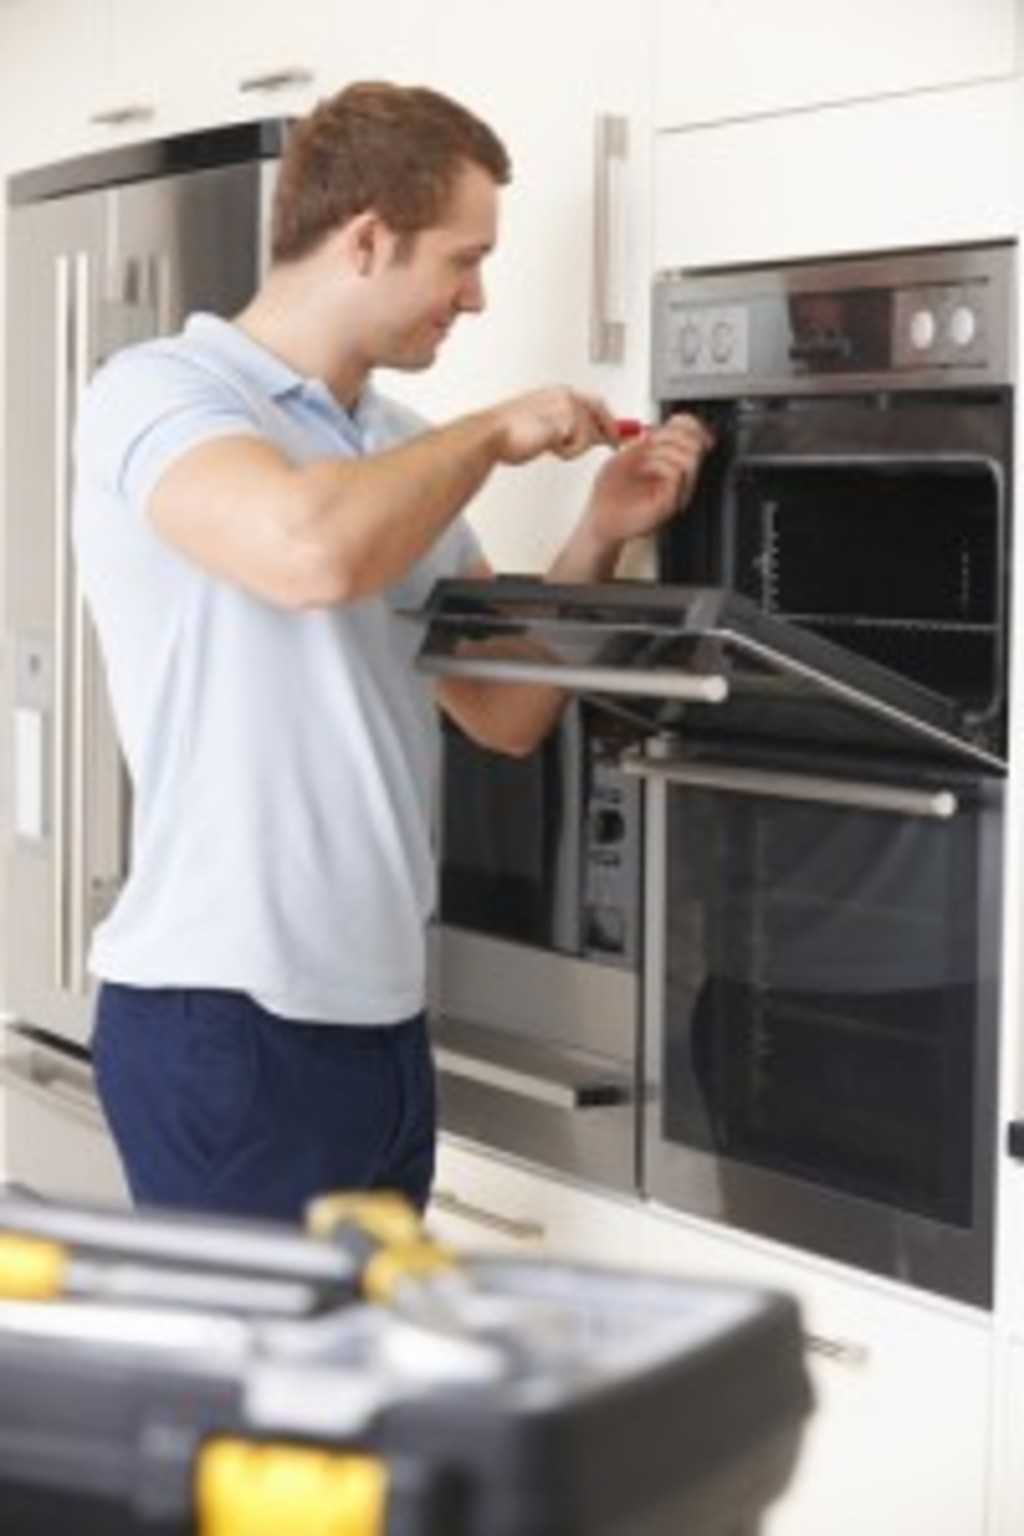 Atlas Appliance Repairs - Oven Repair